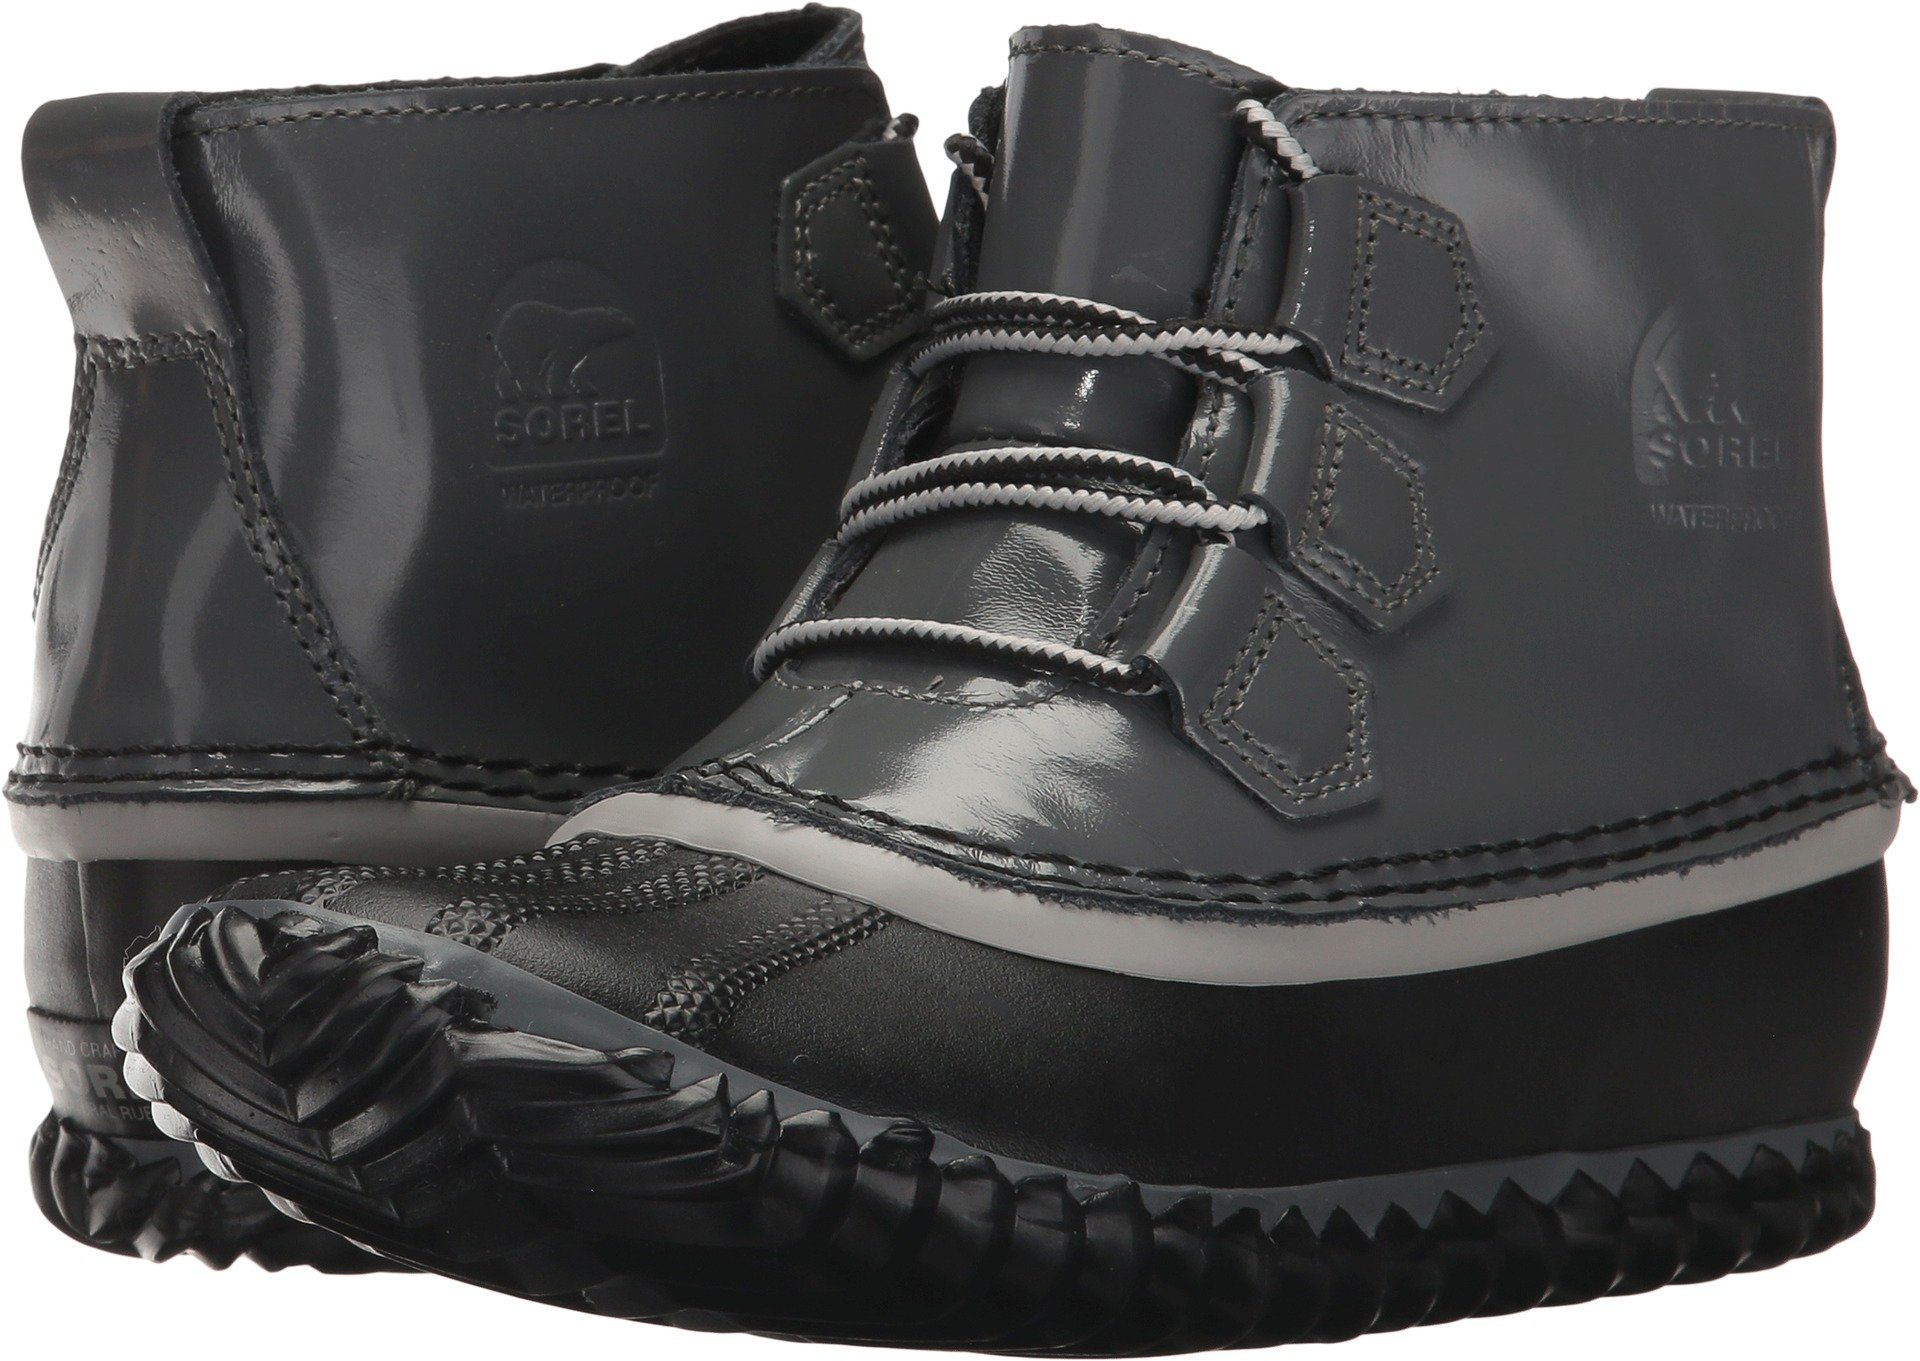 SOREL Womens Out N About Rain Boot, Graphite, 7.5 B(M) US